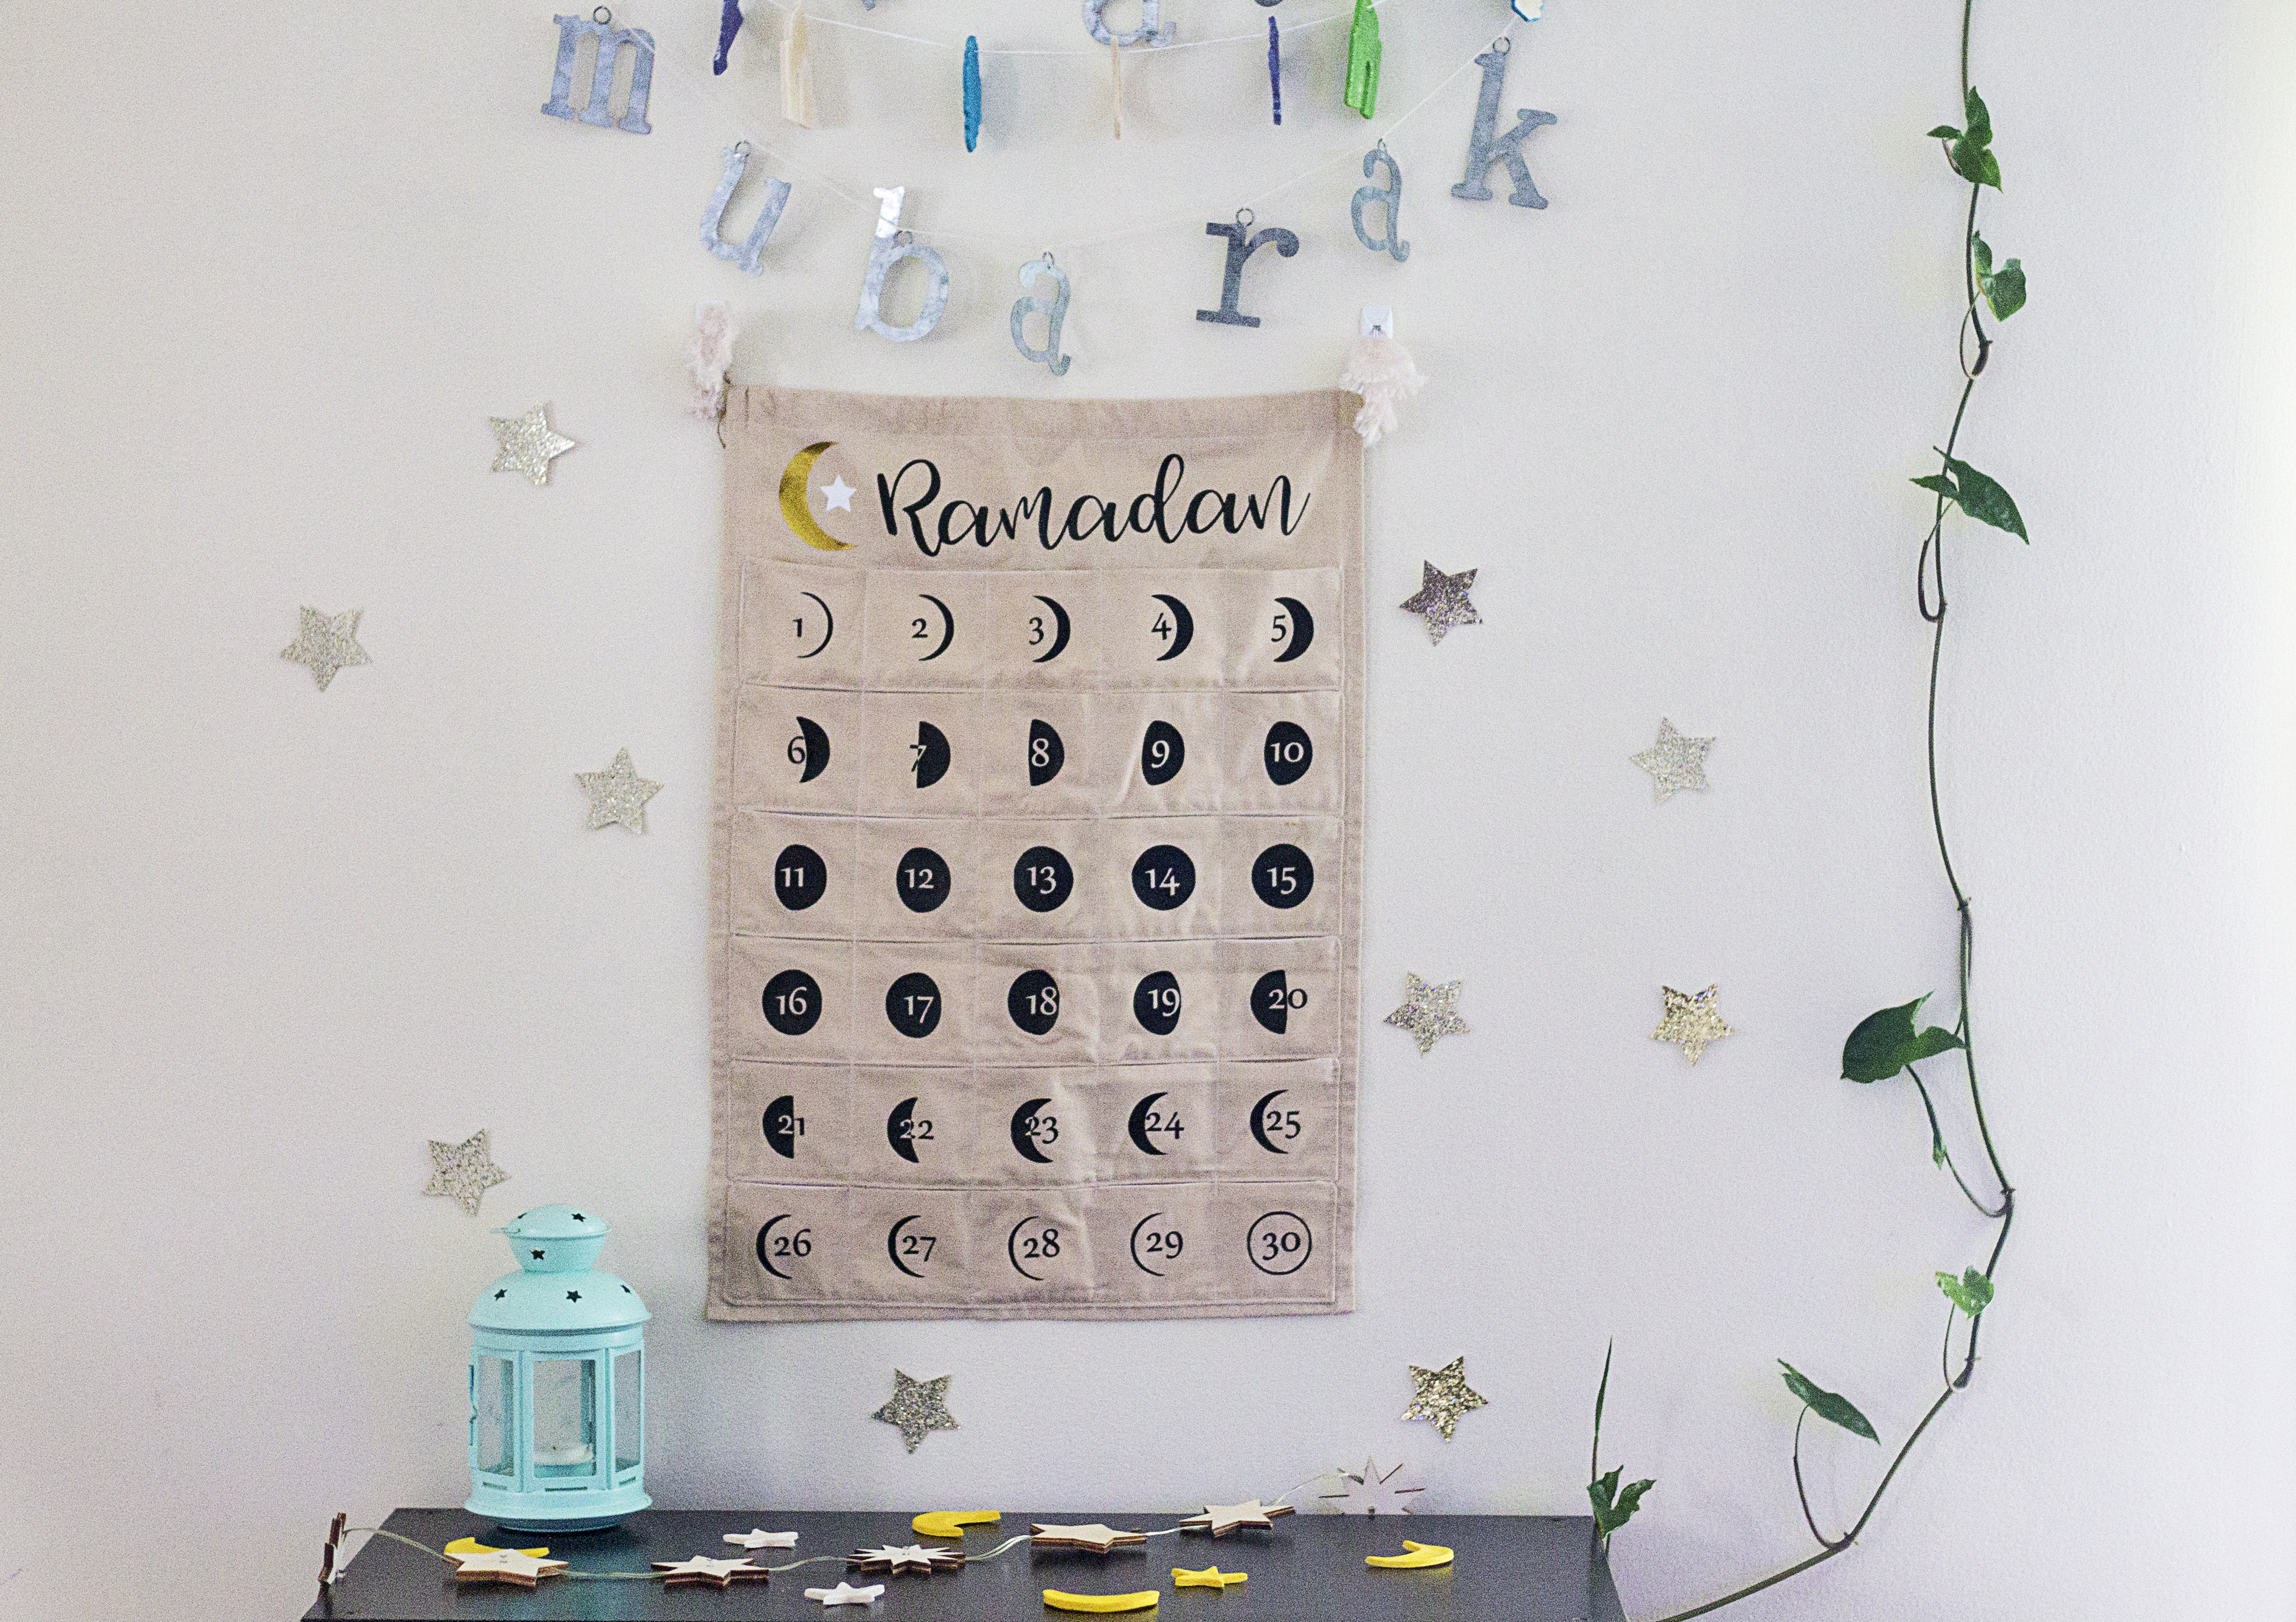 picture about Ramadan Cards Printable called 30 Very careful Ramadan Deeds: Printable Record and Calendar Playing cards